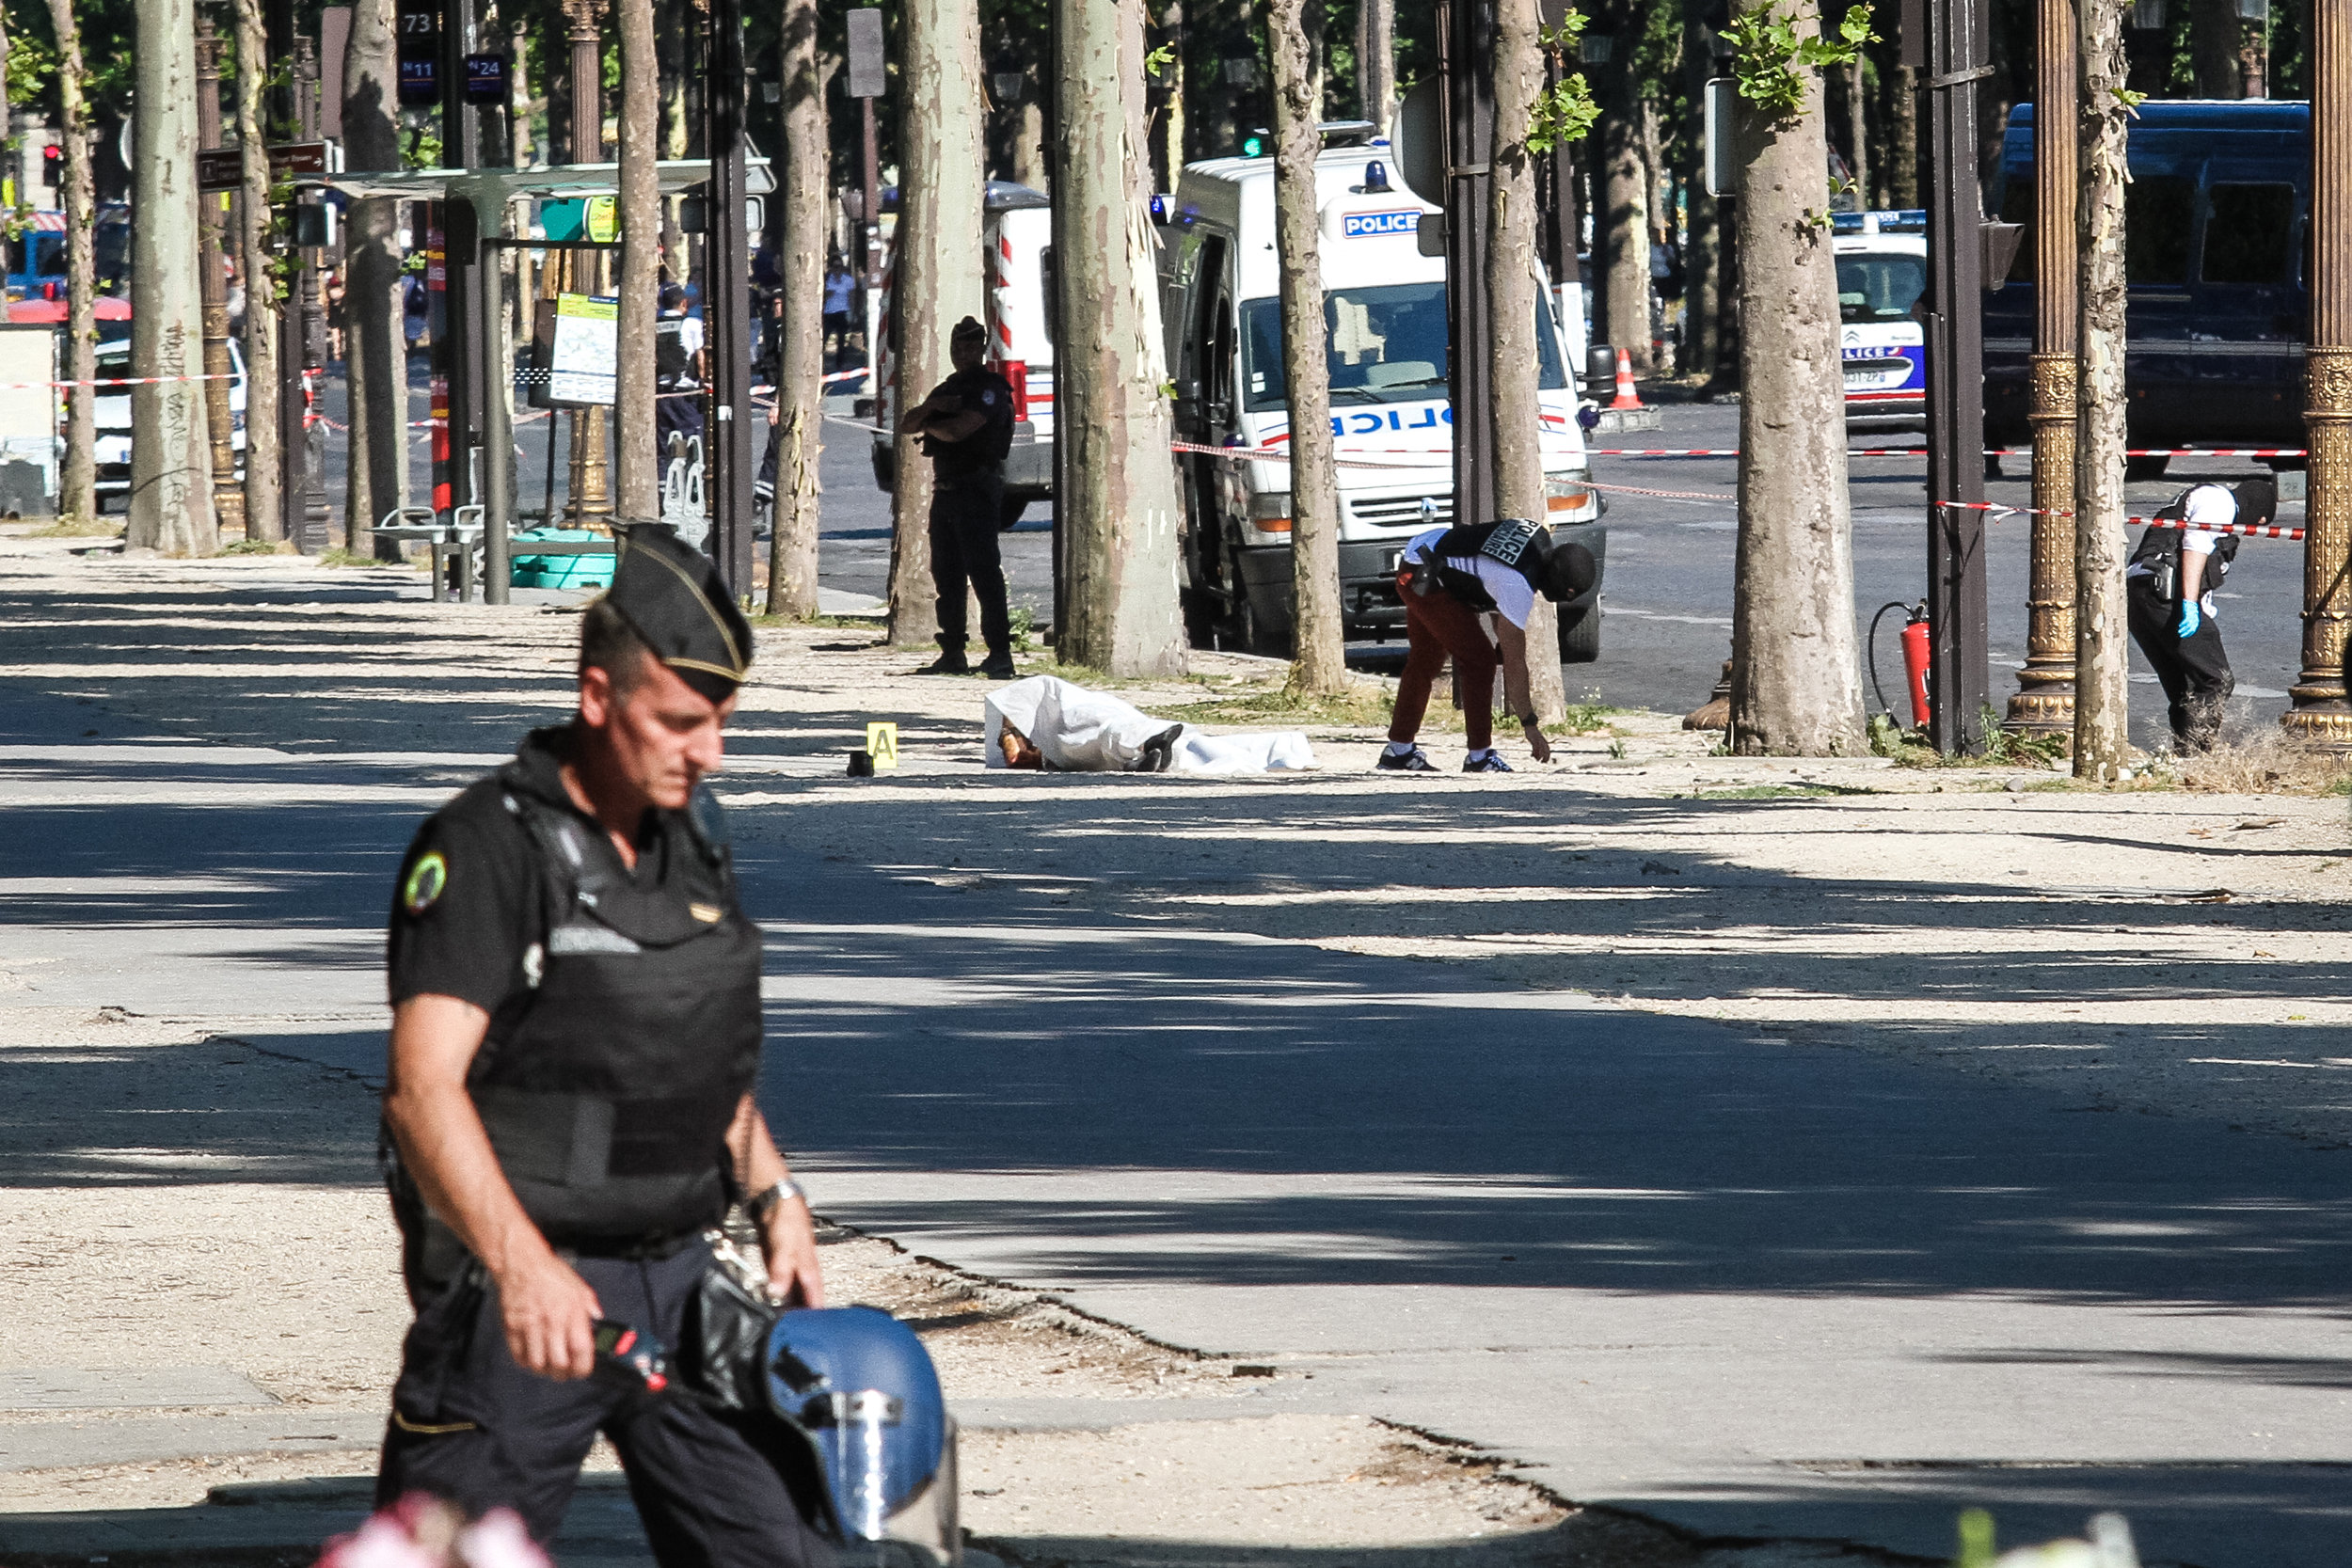 57-20170619-ATTAQUE-CHAMPS-ELYSEES©Augustin-Le_Gall-Haytham-Pictures-IMG_1514.jpg